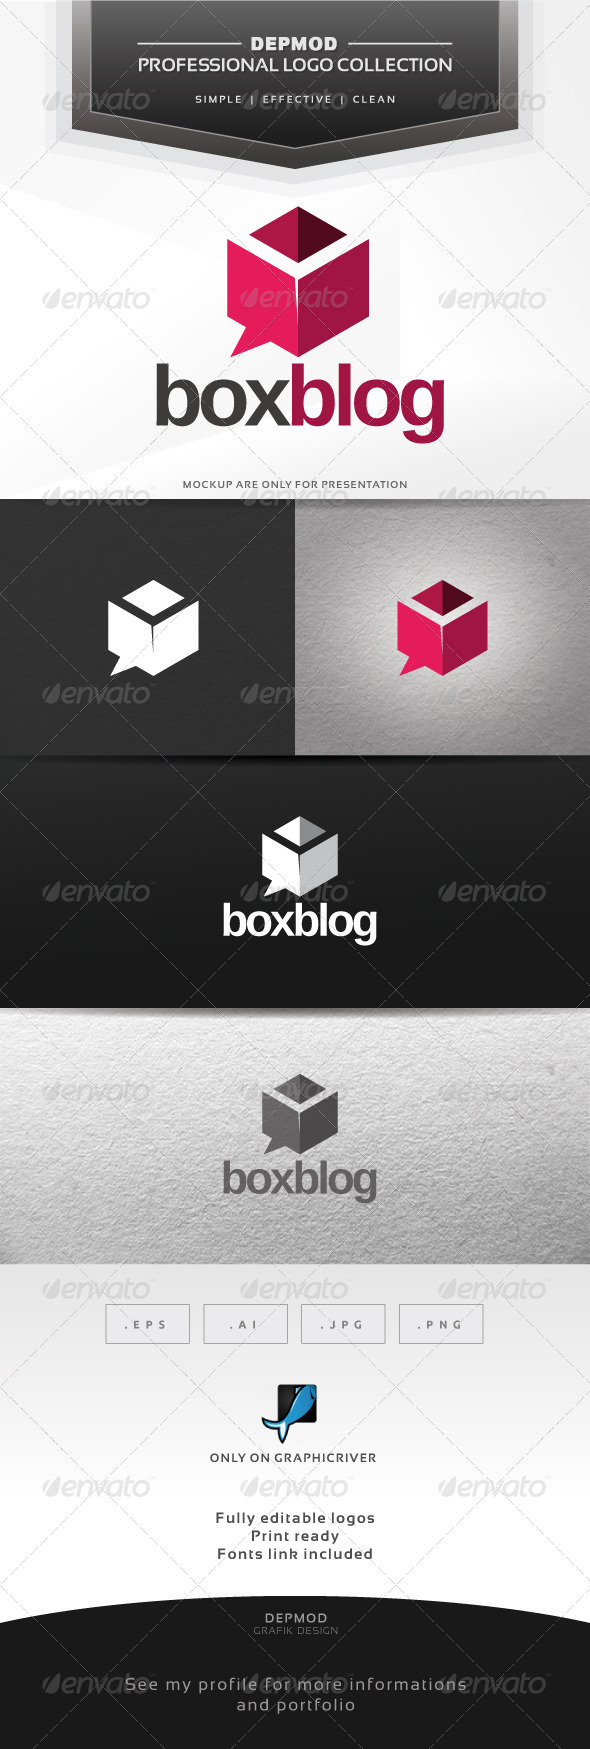 Box Blog Logo - Abstract Logo Templates